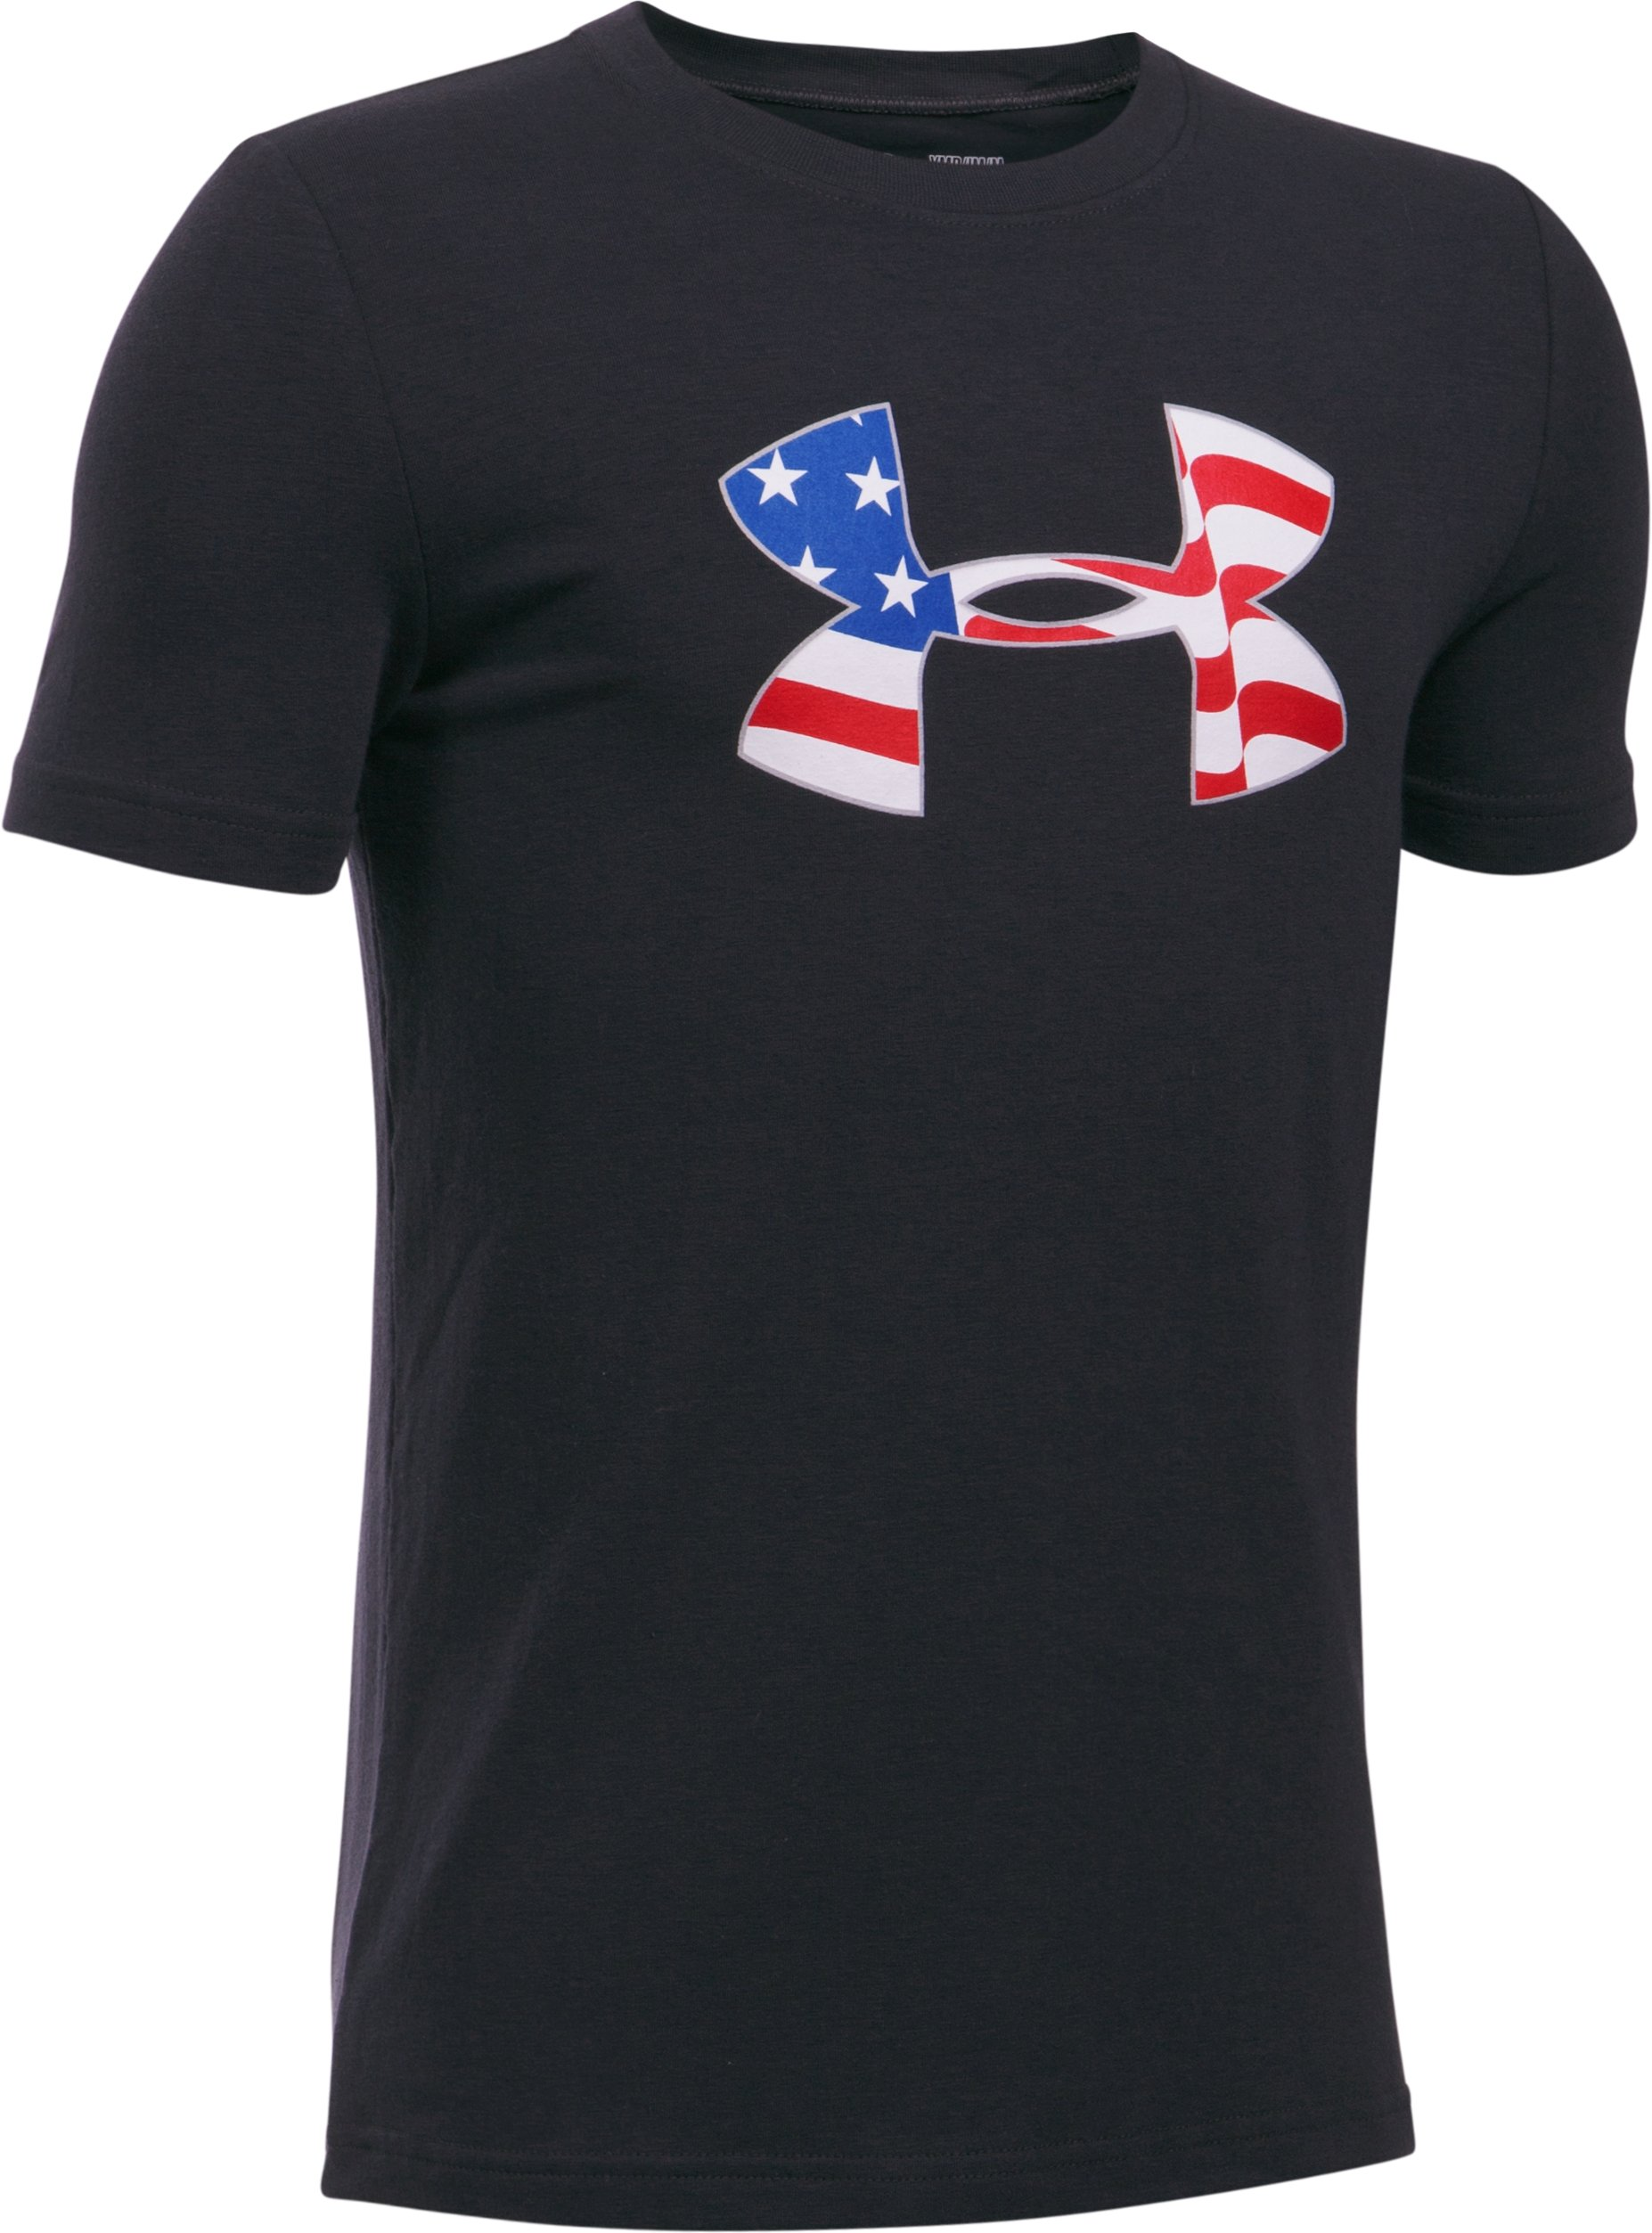 Boys' UA Americana Pride T-Shirt 1 Color $14.99